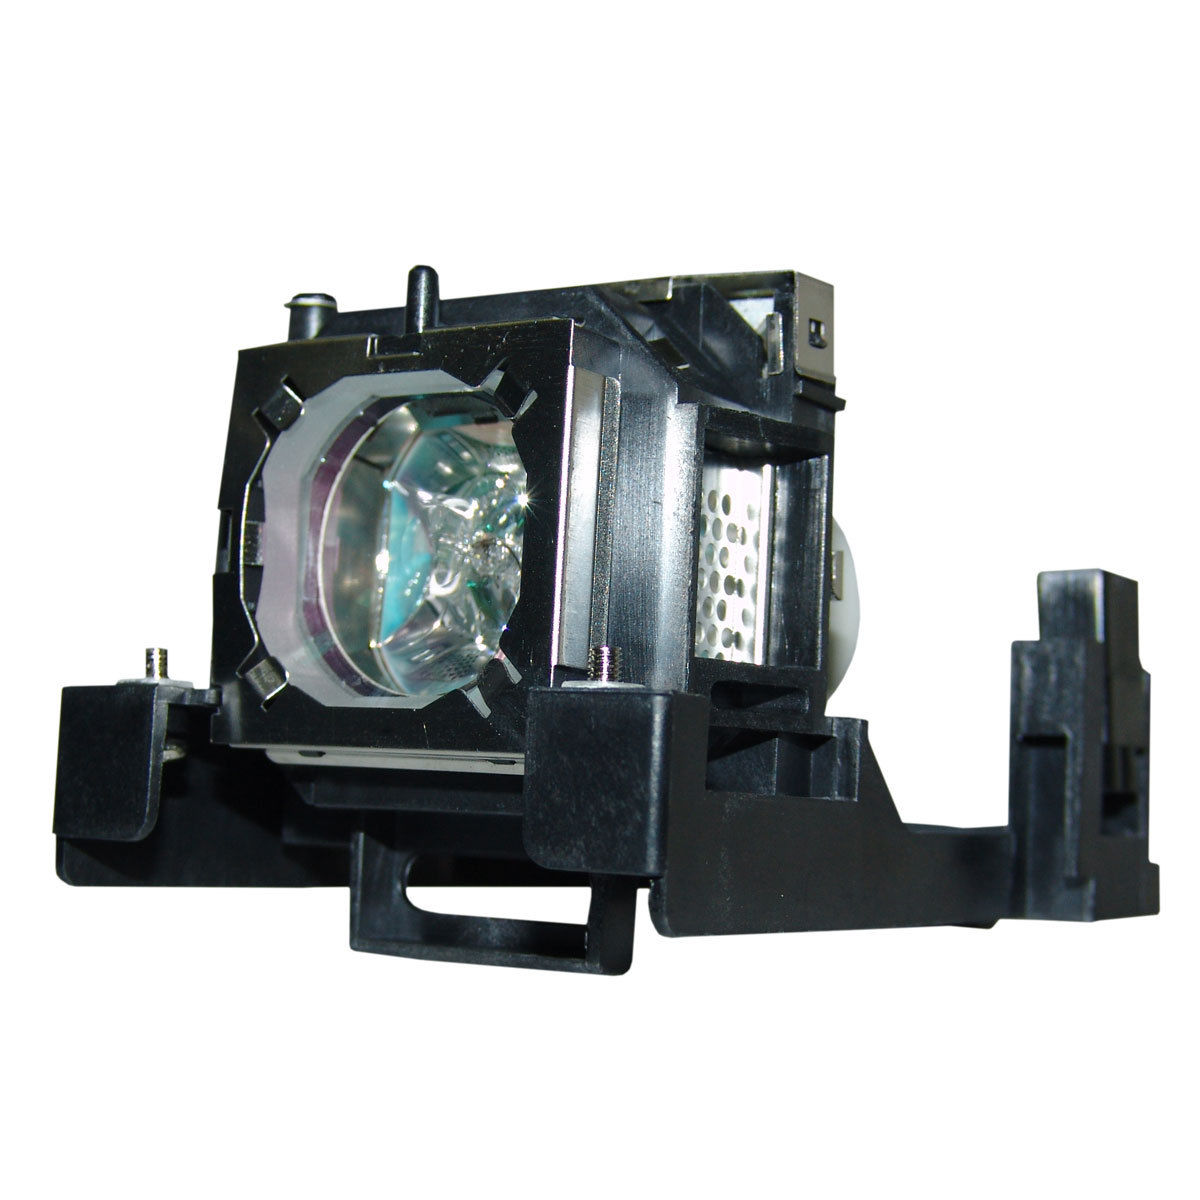 ET-LAT100 LAT100 For Panasonic PT-TW230 PT-TW230EA PT-TW230REA PT-TW230U PT-TW231RE PT-TW231RU Projector Lamp Bulb With housing projector lamp bulb et lab80 etlab80 for panasonic pt lb75 pt lb80 pt lw80ntu pt lb75ea pt lb75nt with housing